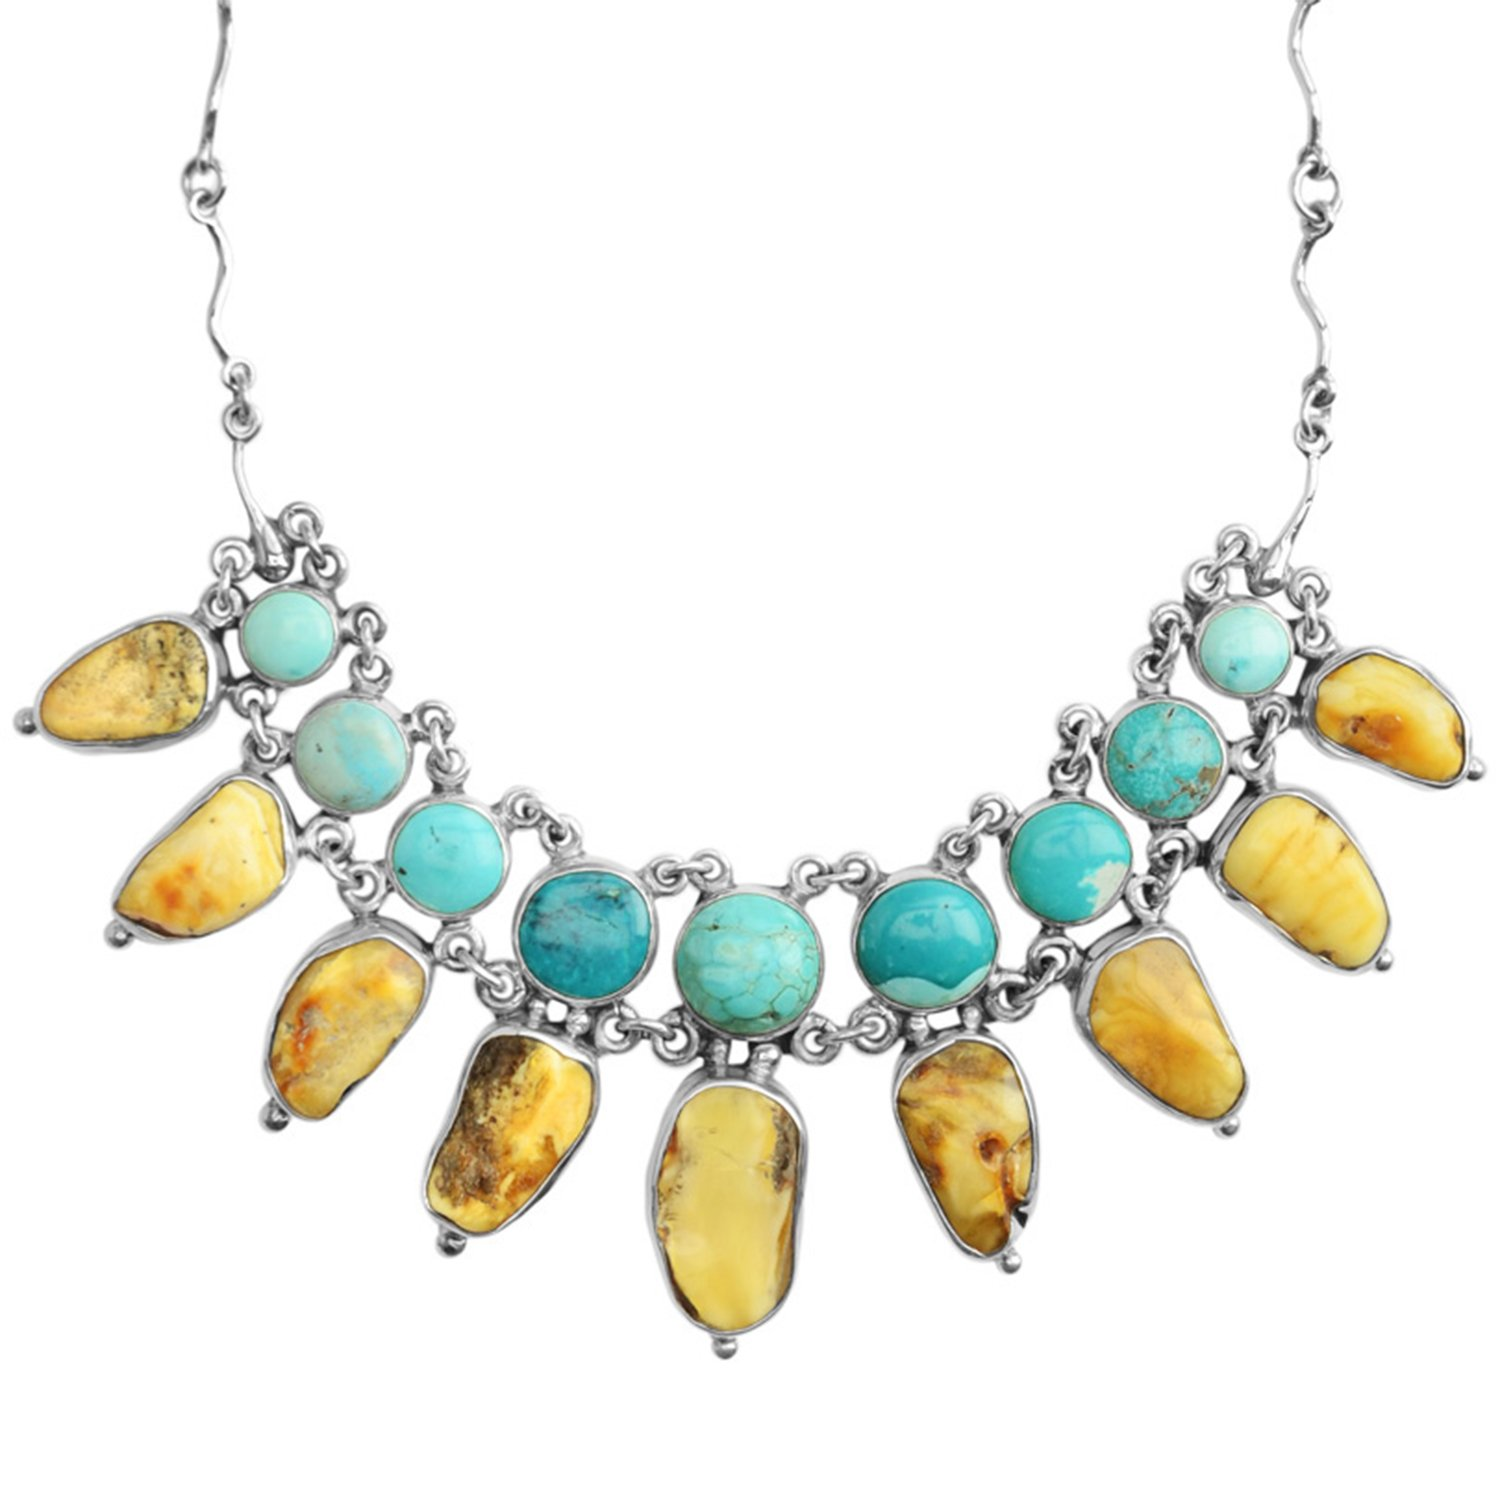 Baltic Butterscotch Amber Necklace with Turquoise and Sterling Silver - Genuine Amber & Turquoise